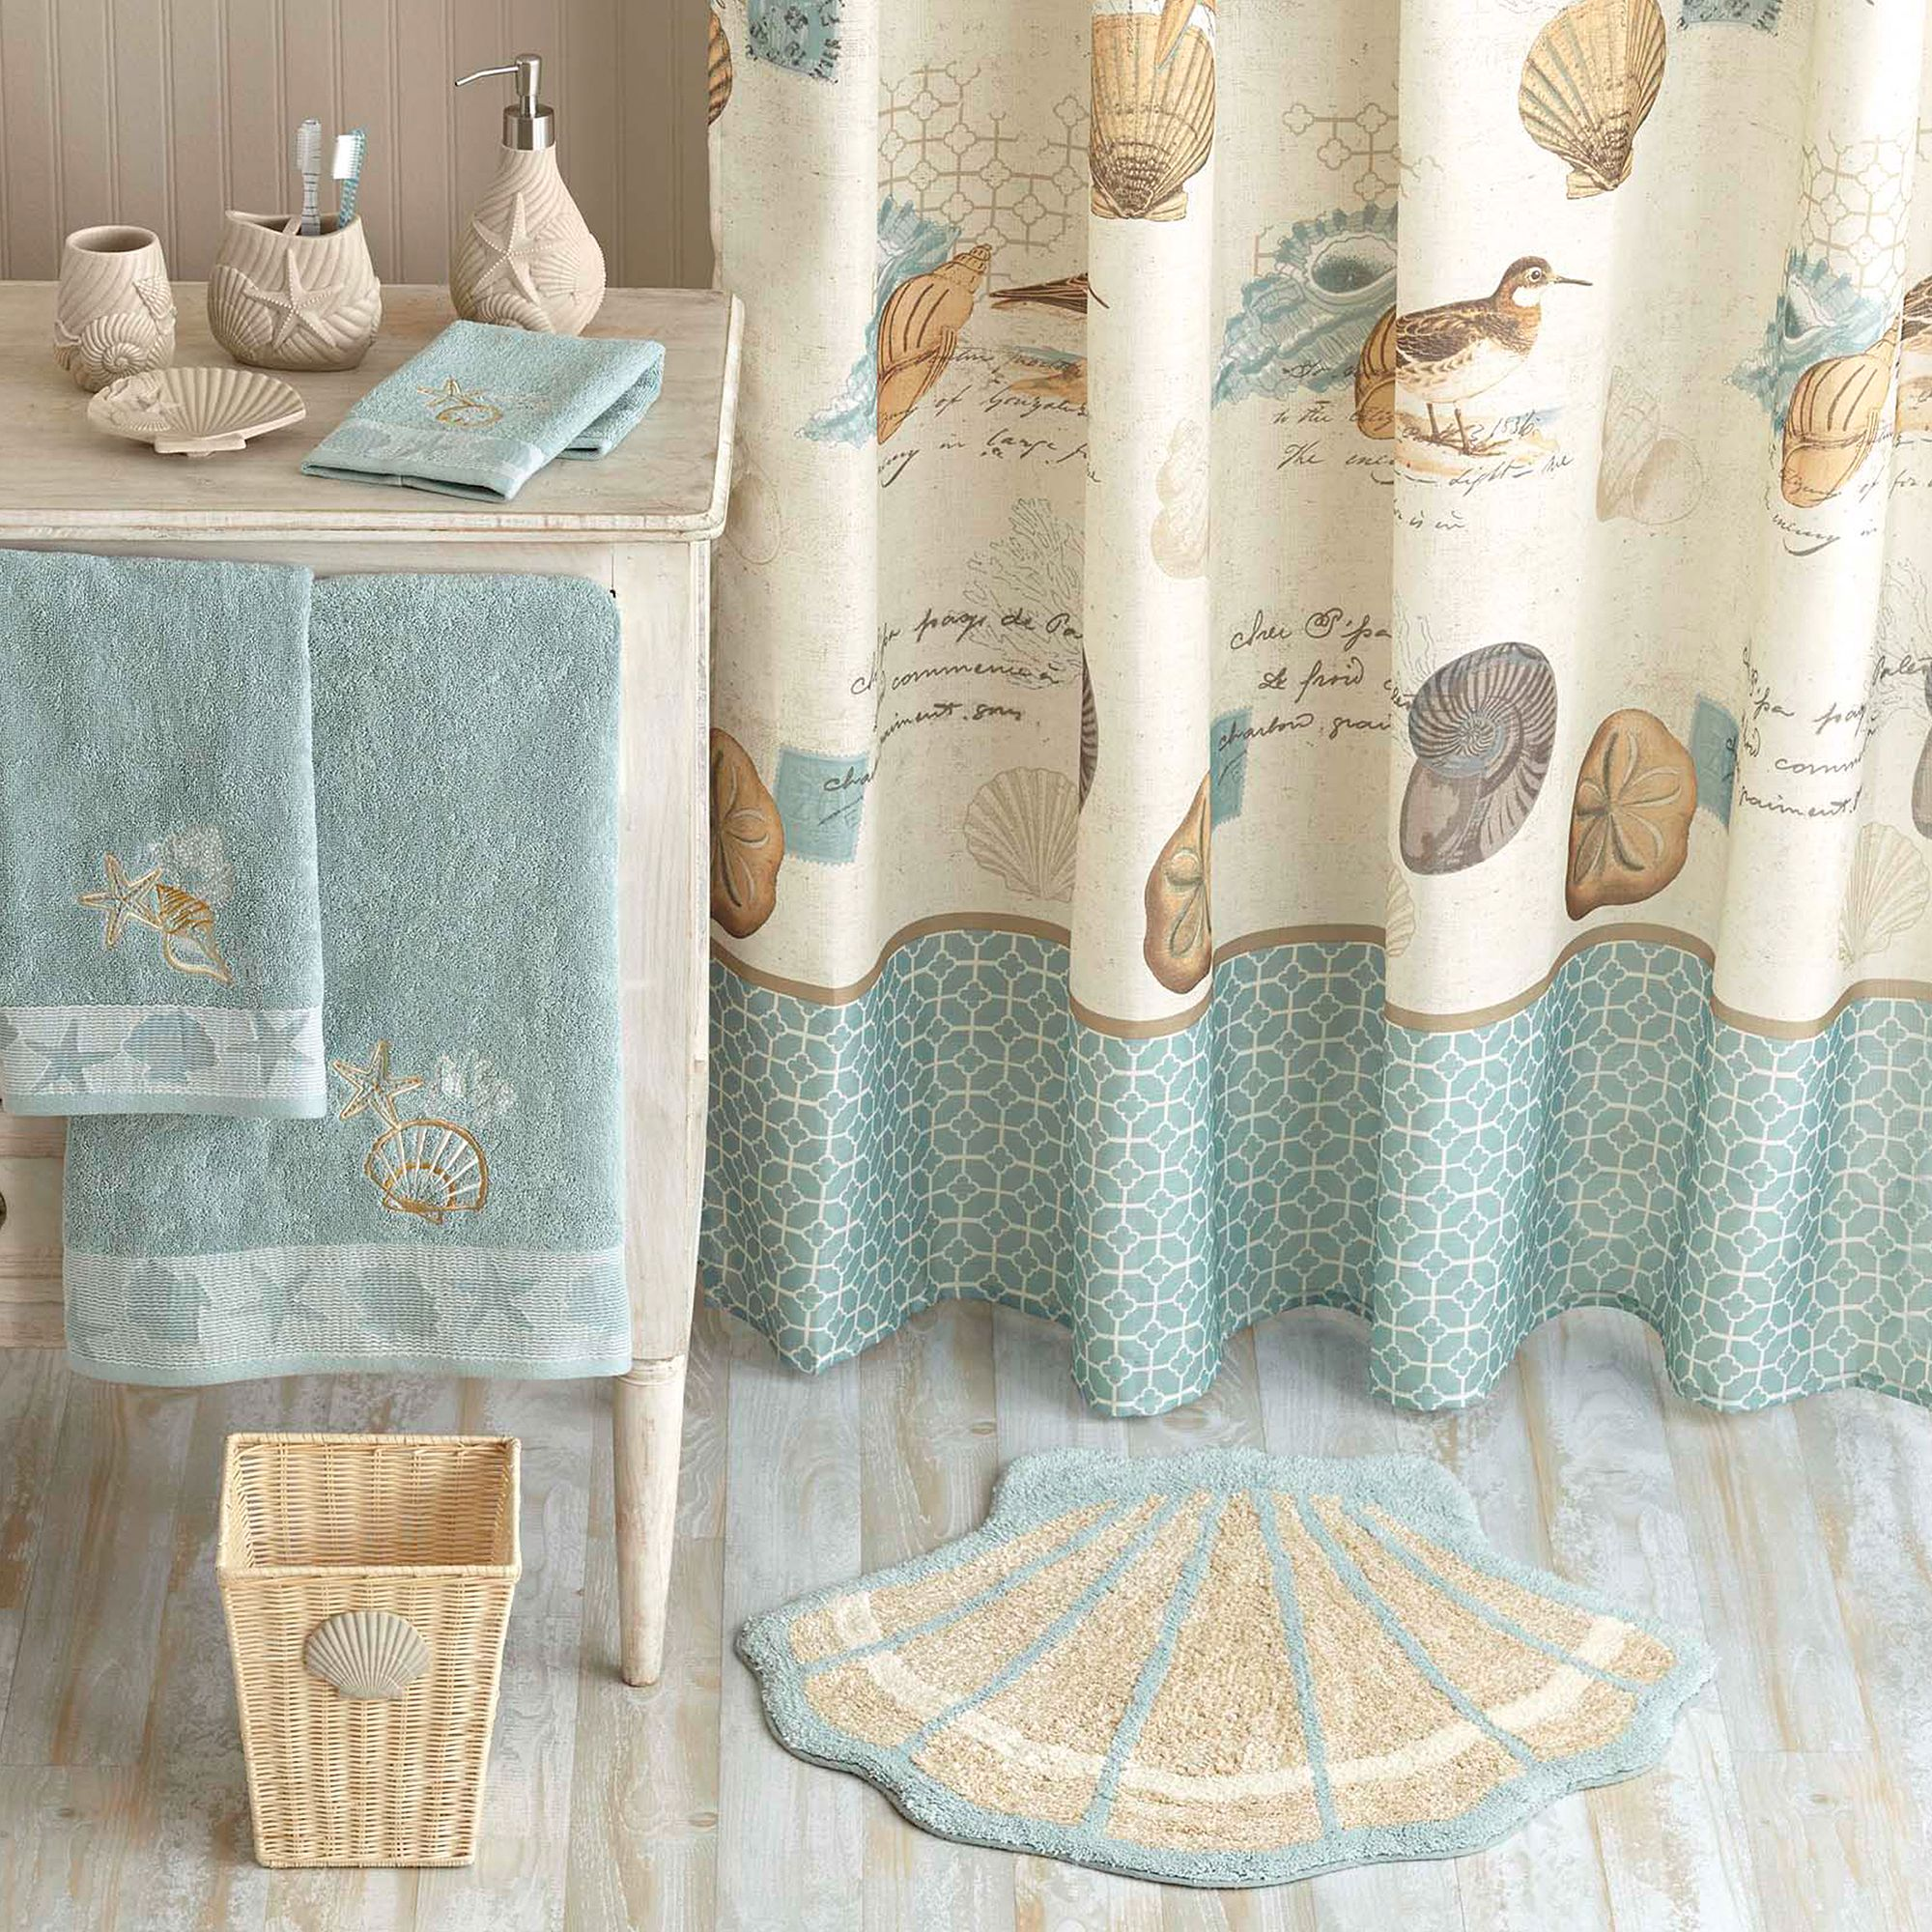 Seashell Bathroom Decor To Bring The Beach Home With Images